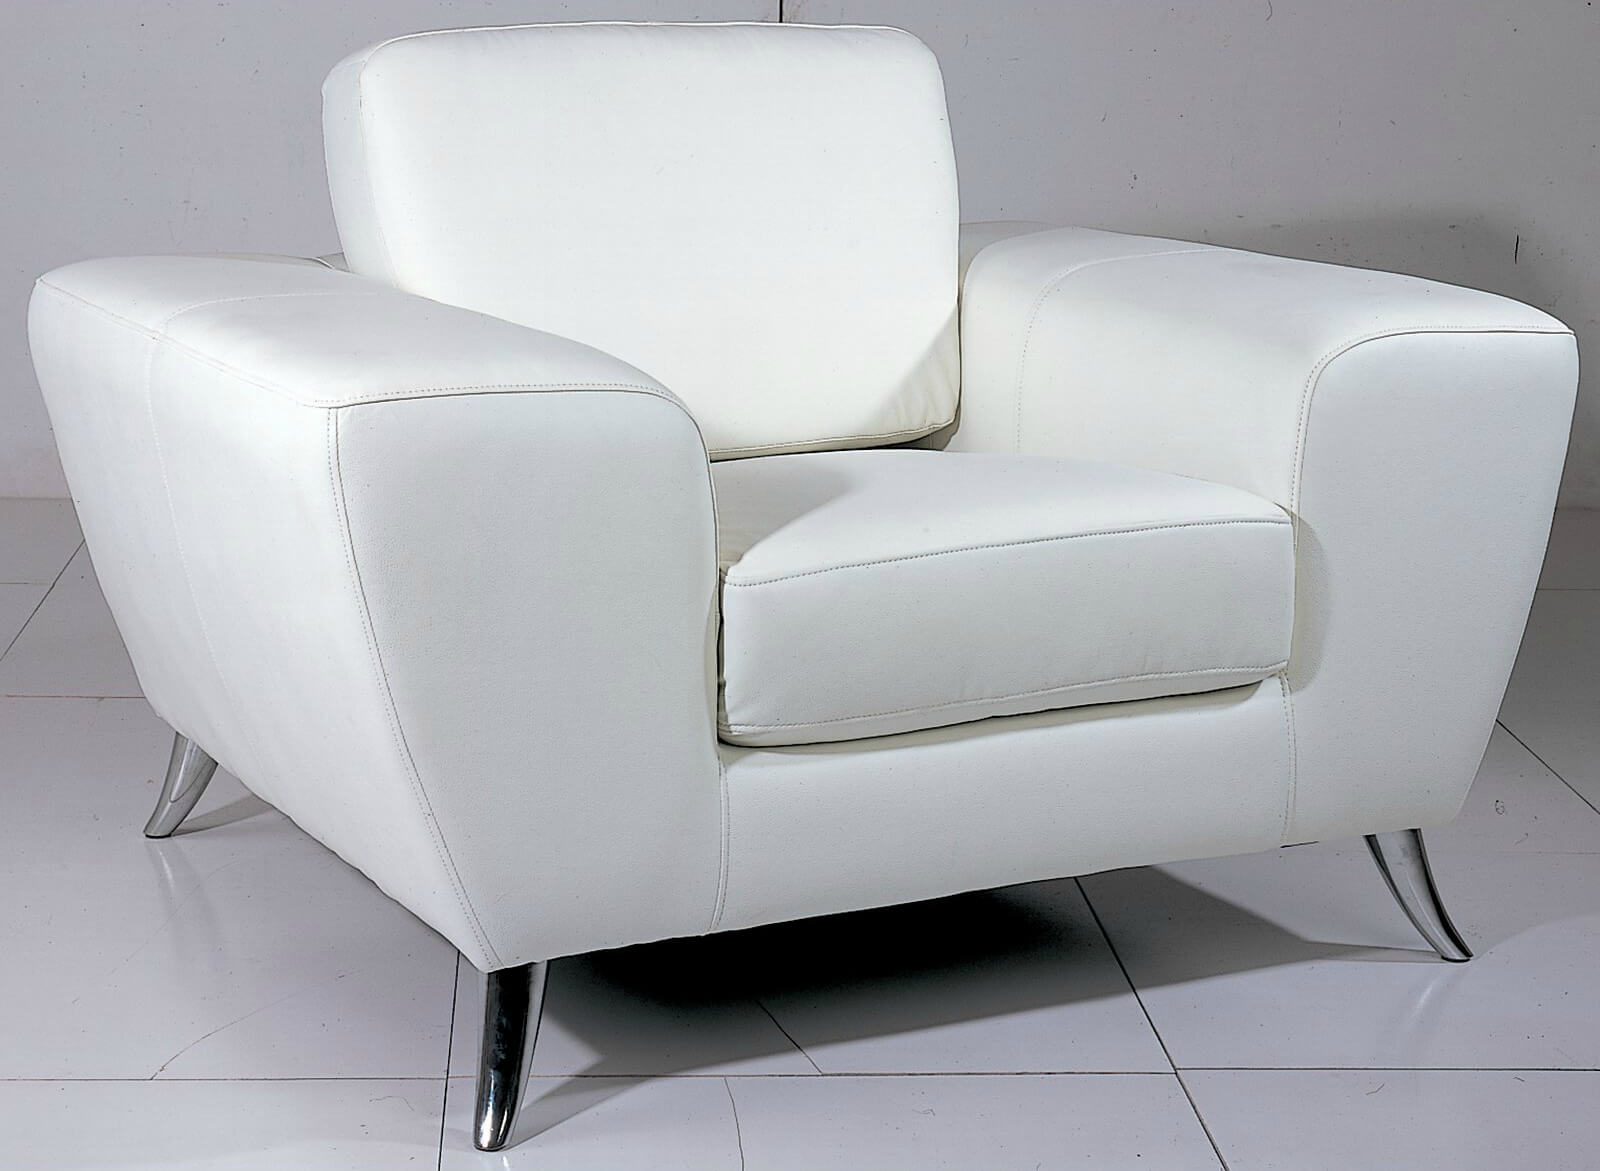 New Modern Accent Chair Concept